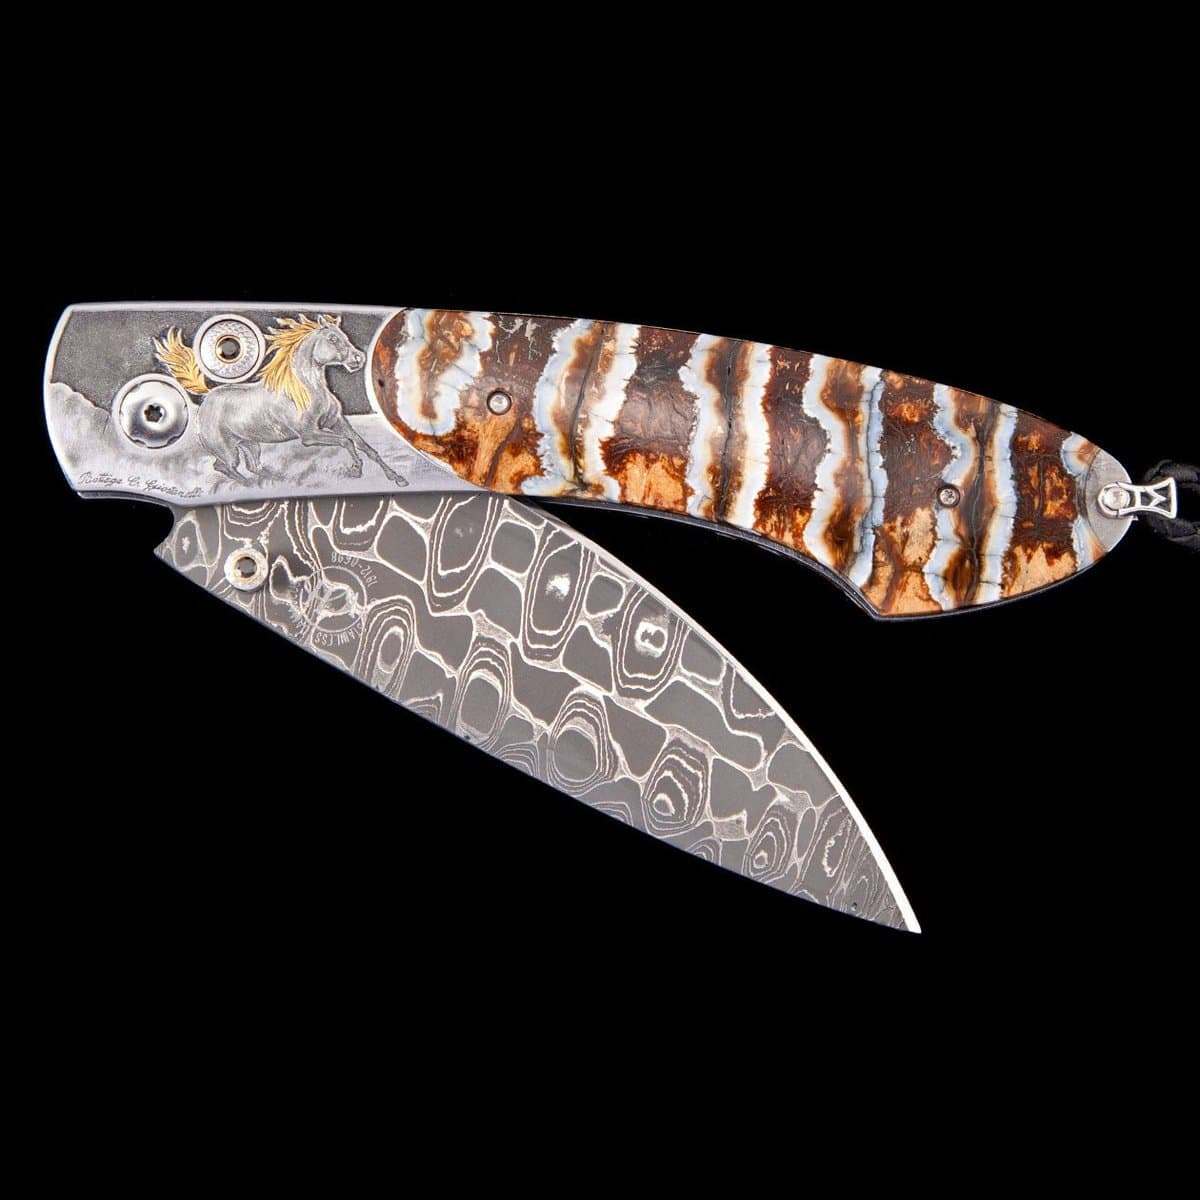 Spearpoint Arabian II Limited Edition Knife - B12 ARABIAN II-William Henry-Renee Taylor Gallery